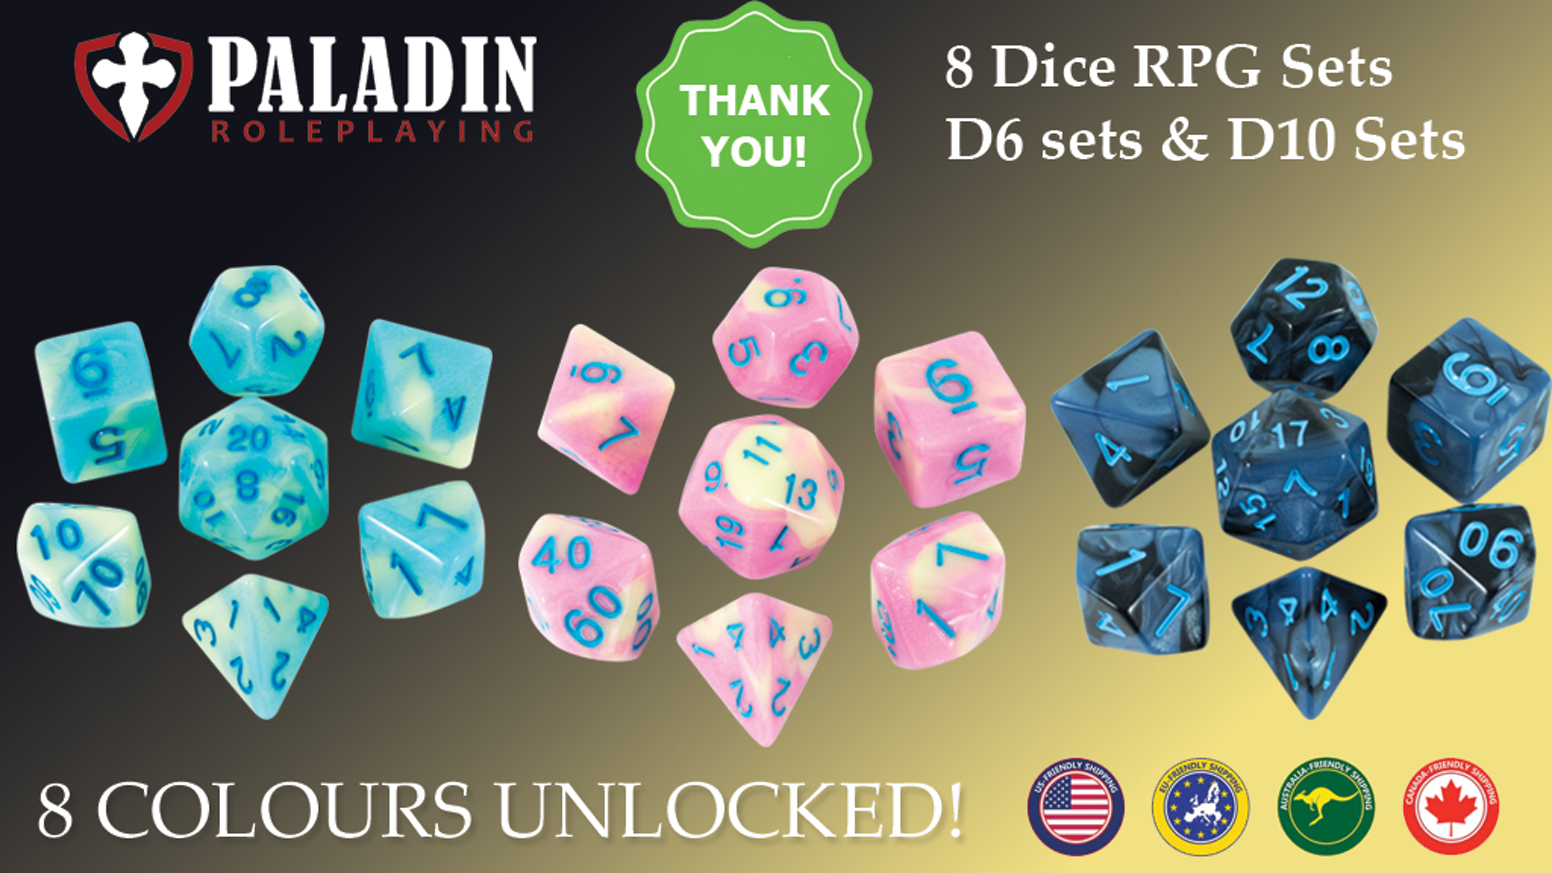 Missed the Kickstarter? No problem! Visit our website for lots of dice loveliness - click below: